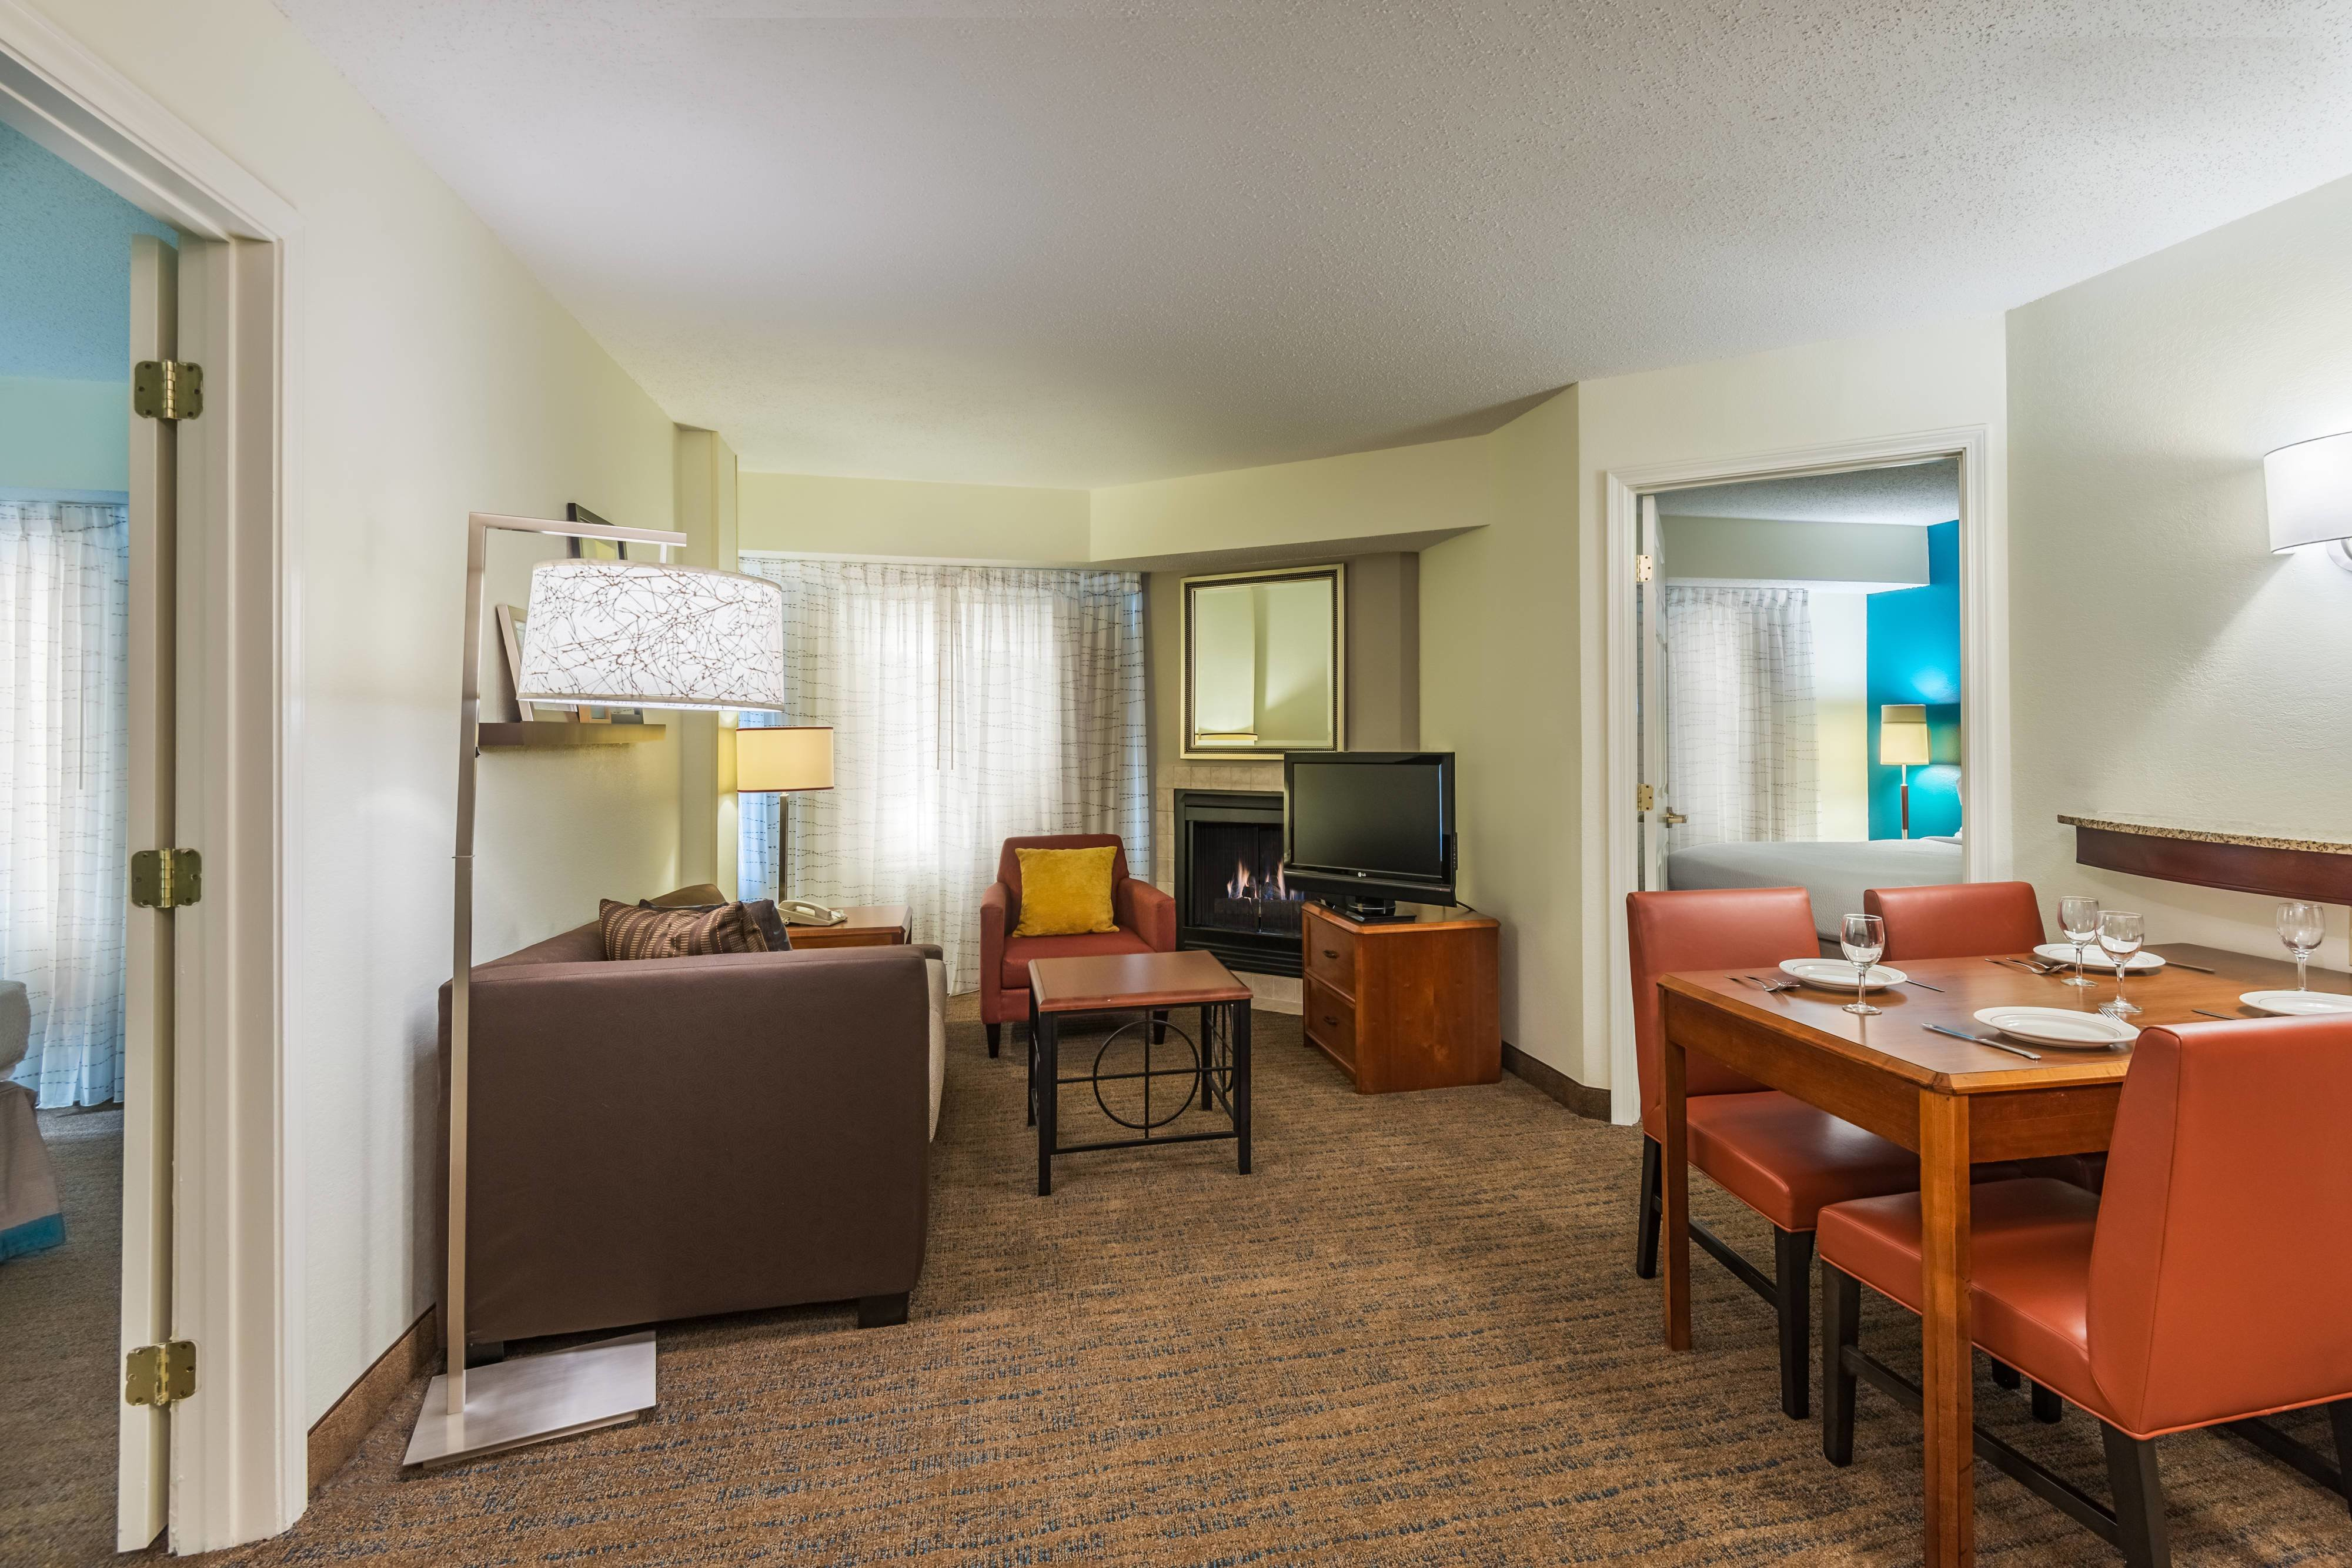 Best Hotels In Charlotte Nc Residence Inn Charlotte Southpark With Pictures